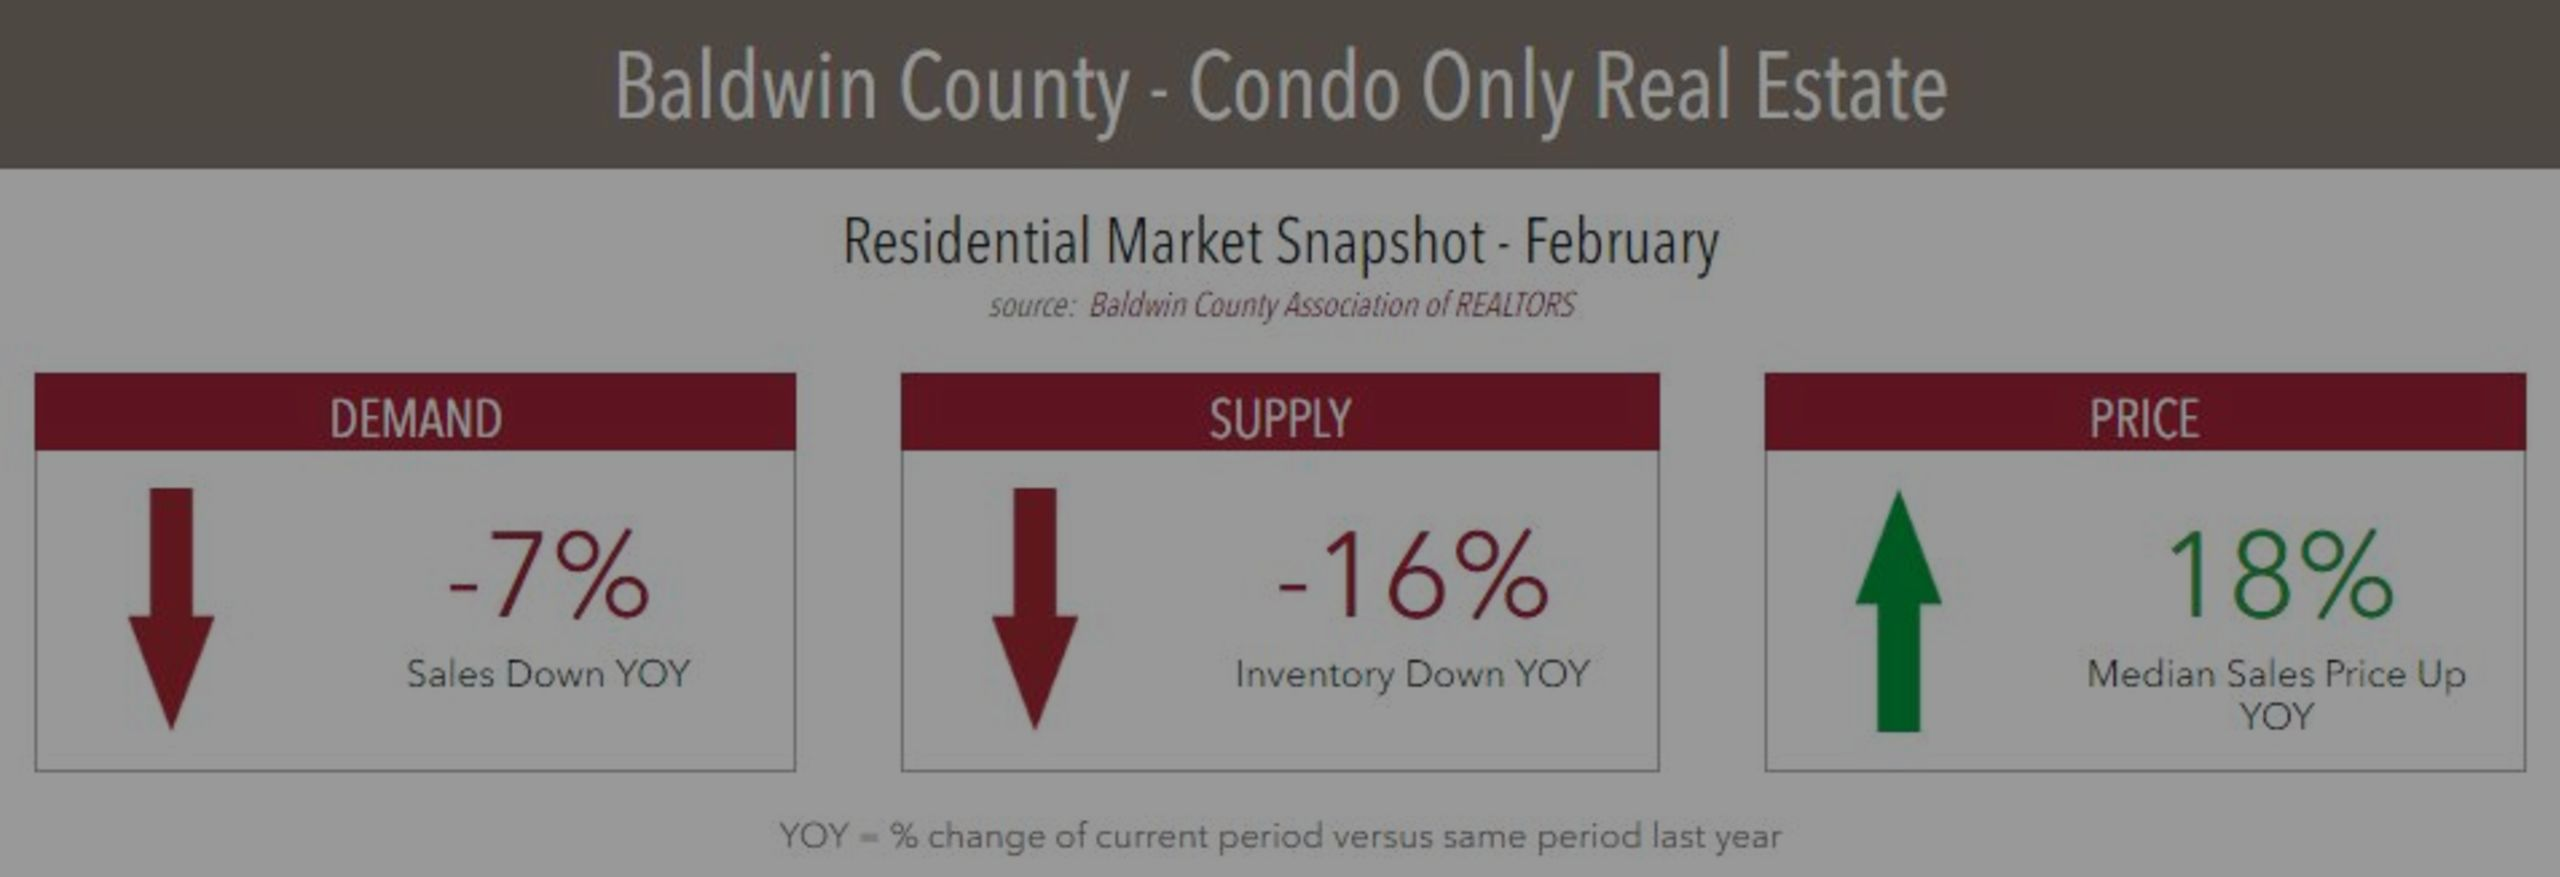 Condo Prices Up in Baldwin County in February from a Year Ago